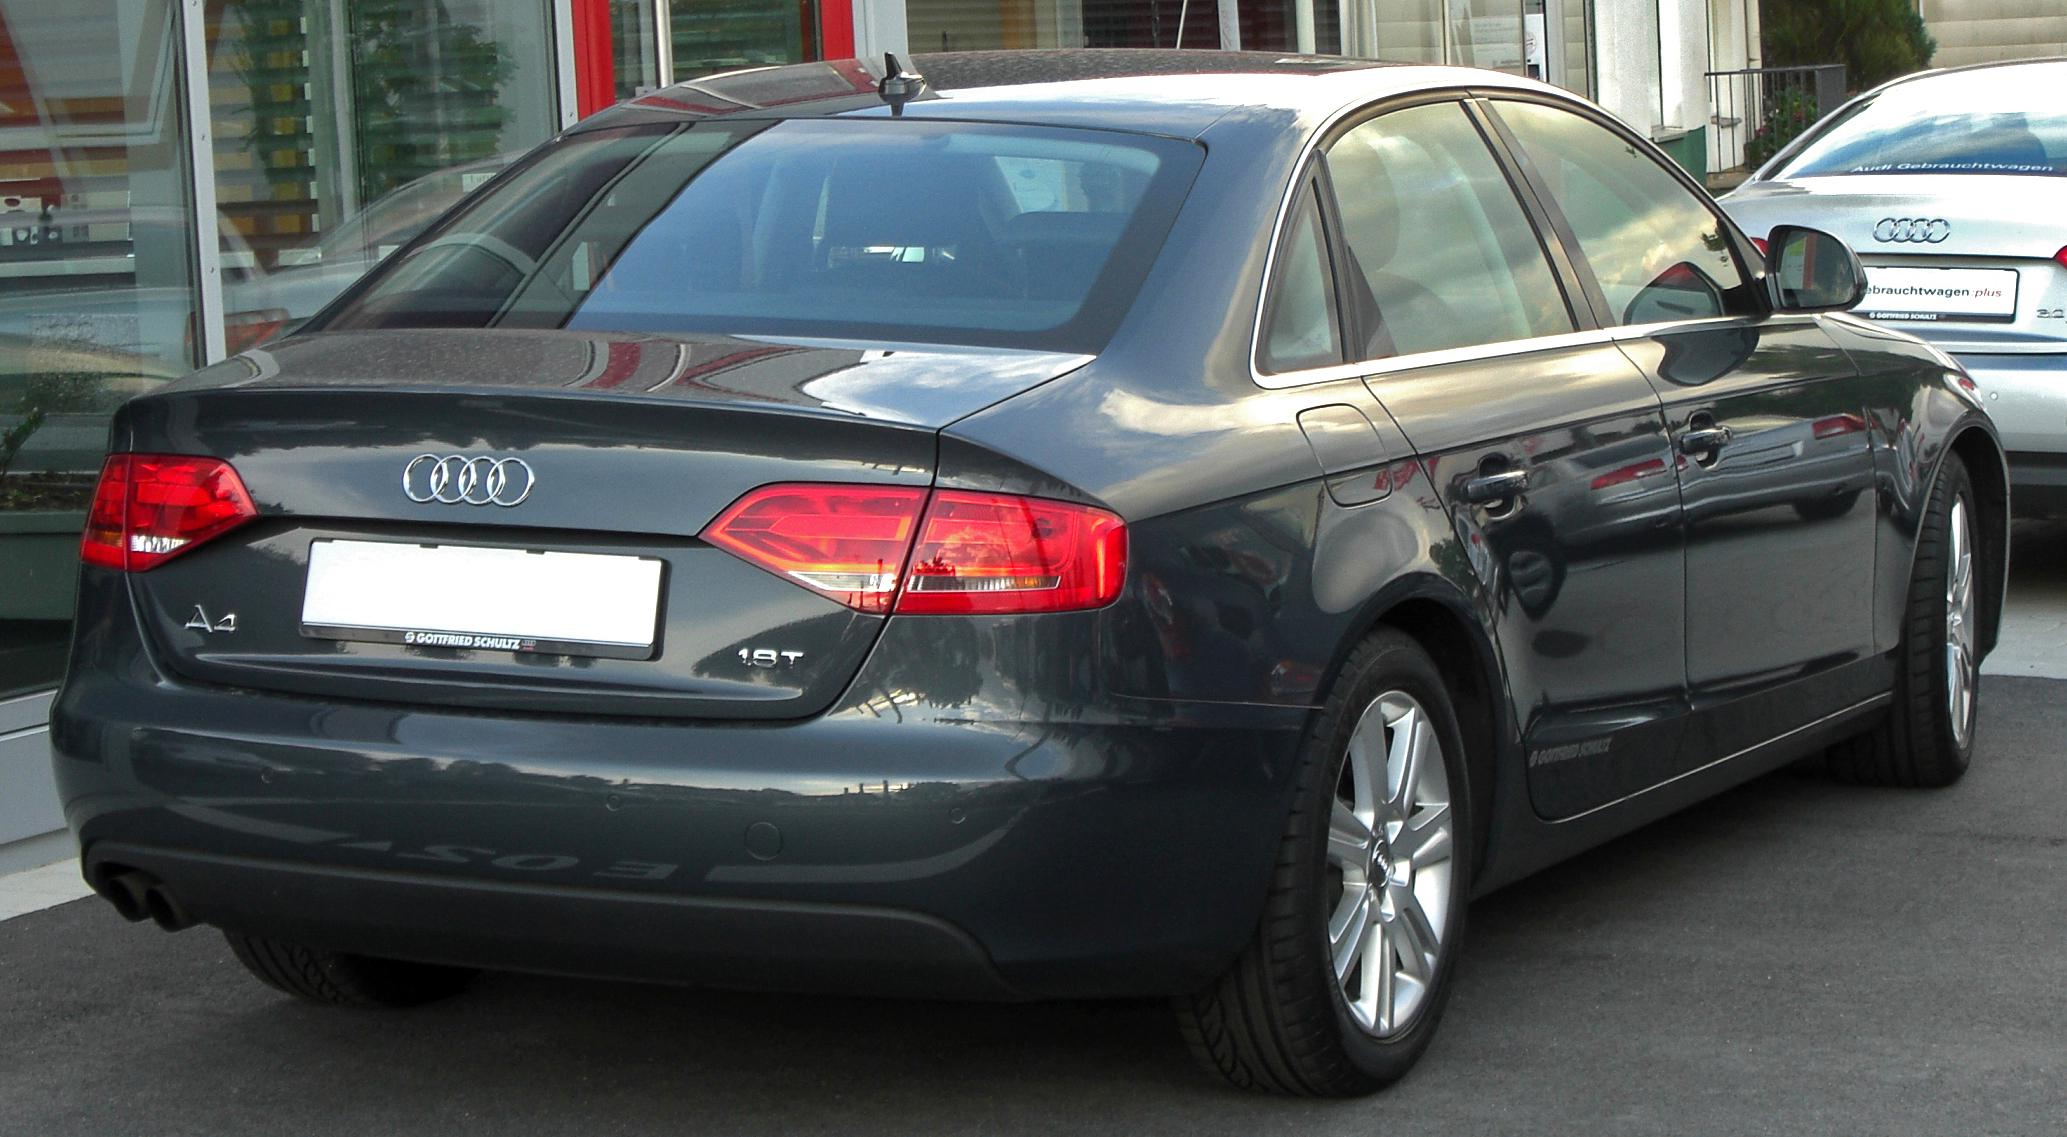 File Audi A4 B8 1 8t Rear Jpg Wikimedia Commons